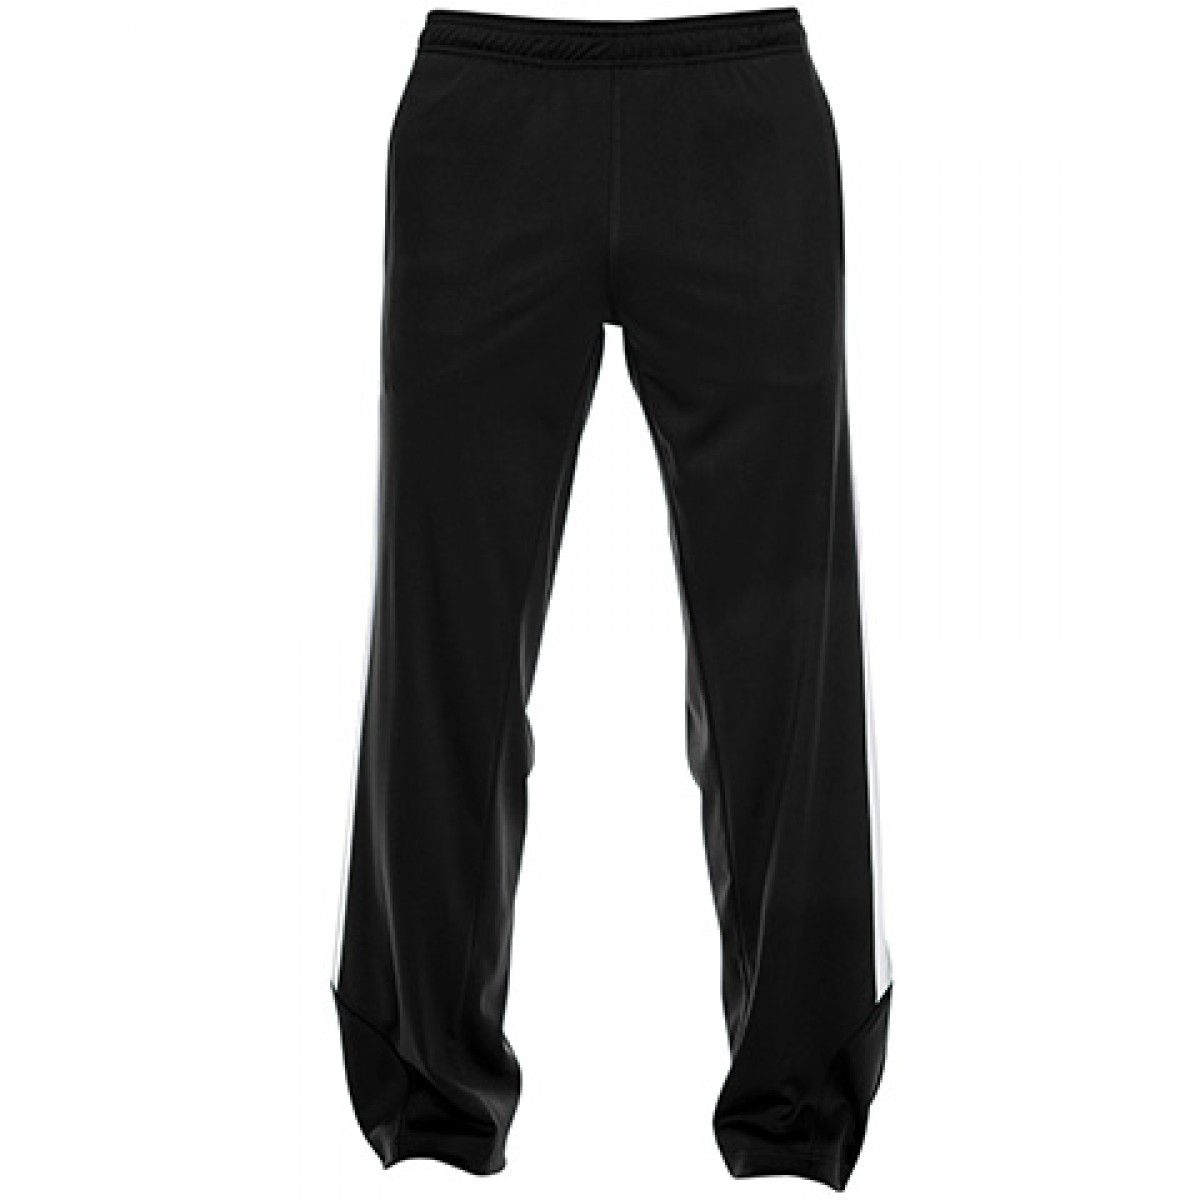 Men's Elite Performance Fleece Pant-Black-2XL